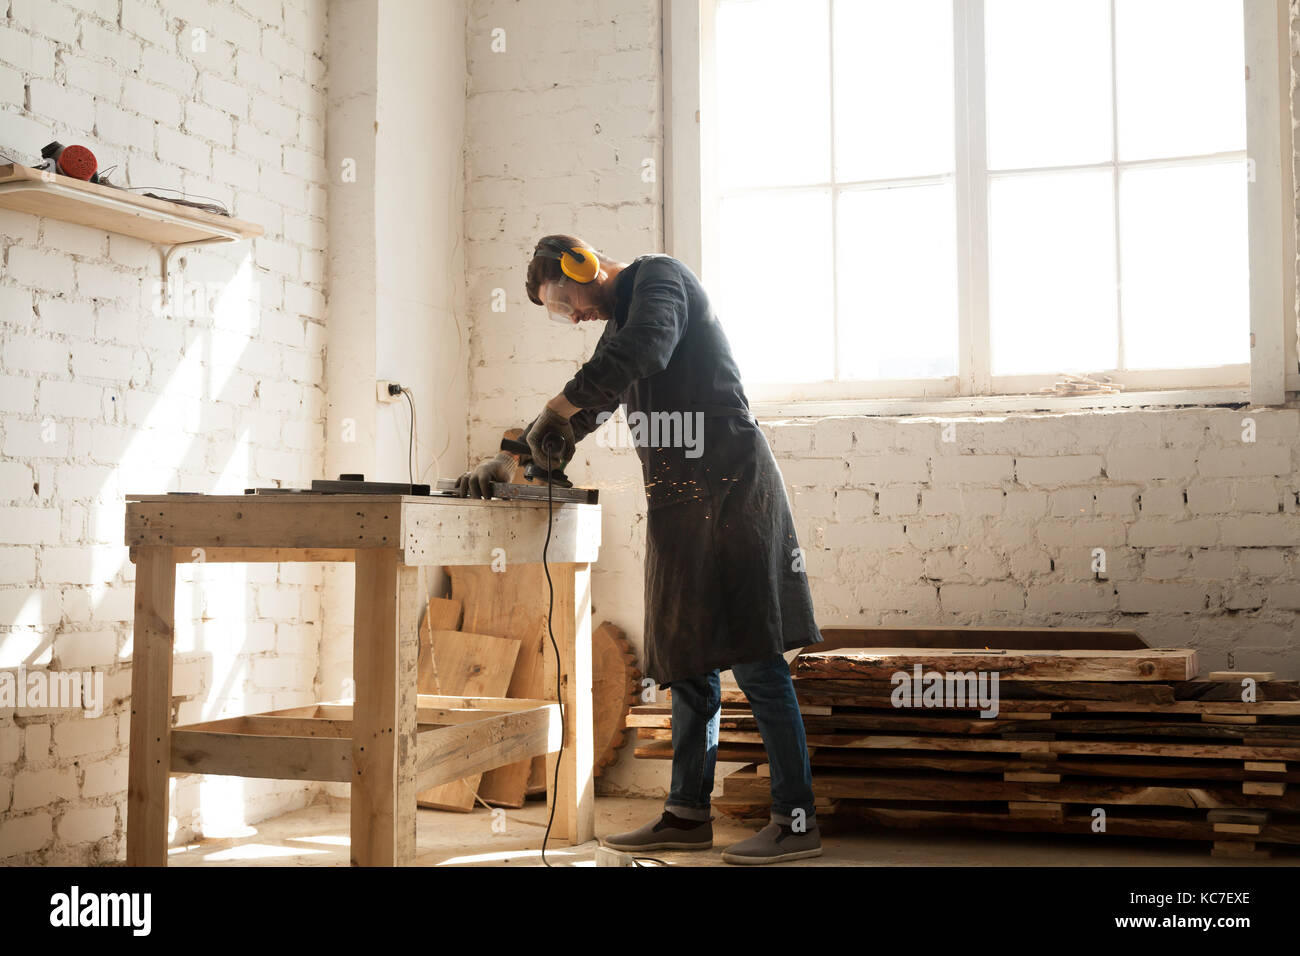 Artisan business opportunity in woodwork workshop - Stock Image